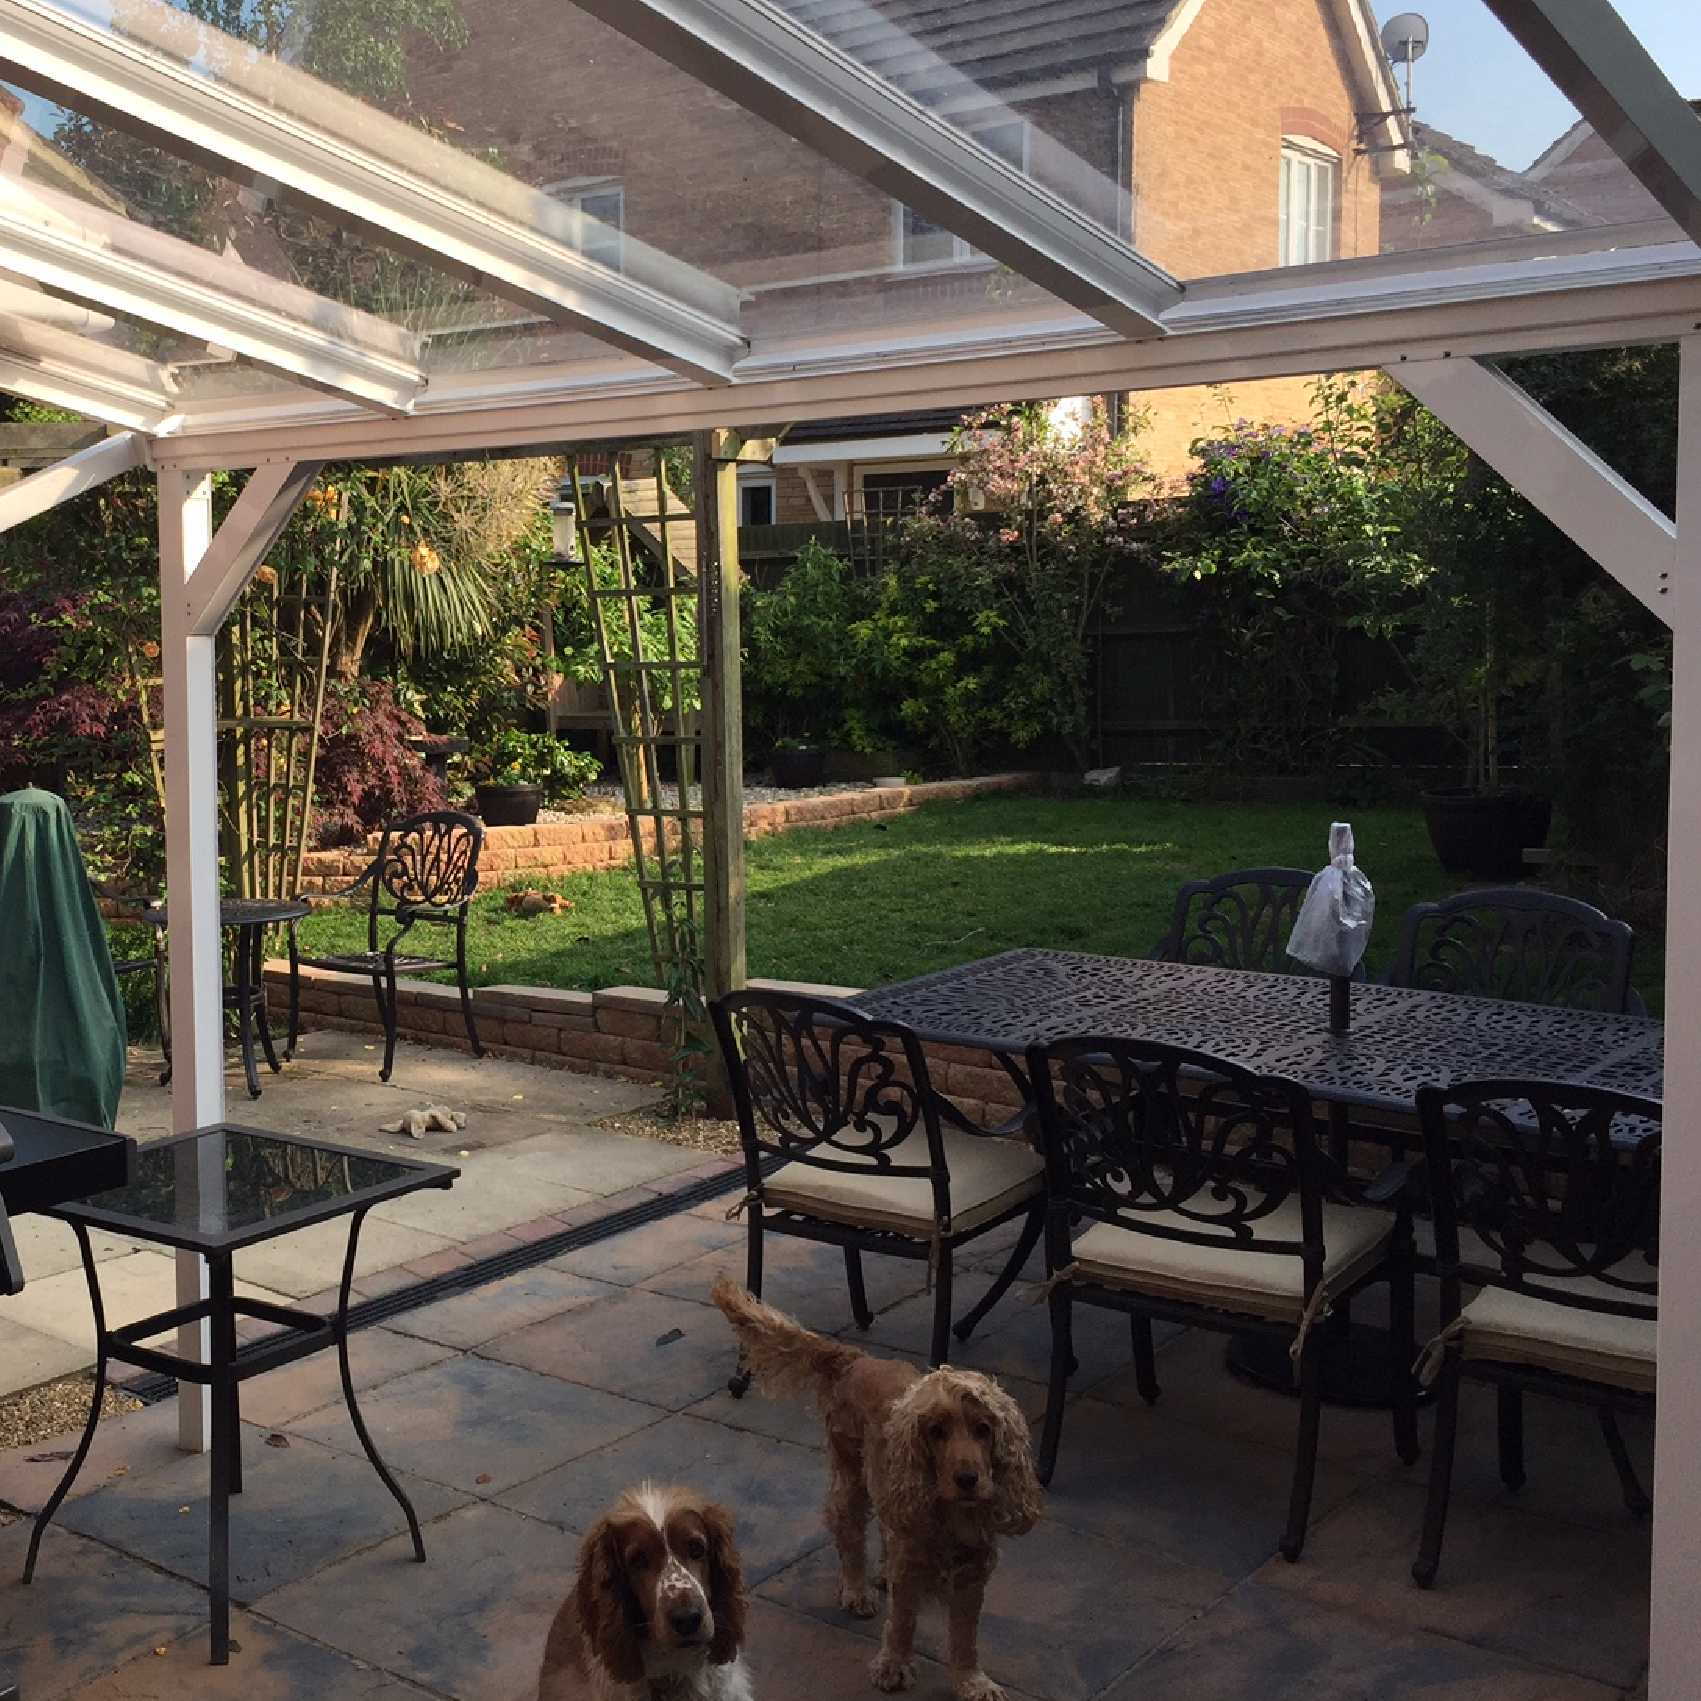 Affordable Omega Smart Lean-To Canopy with 6mm Glass Clear Plate Polycarbonate Glazing - 2.8m (W) x 1.5m (P), (2) Supporting Posts